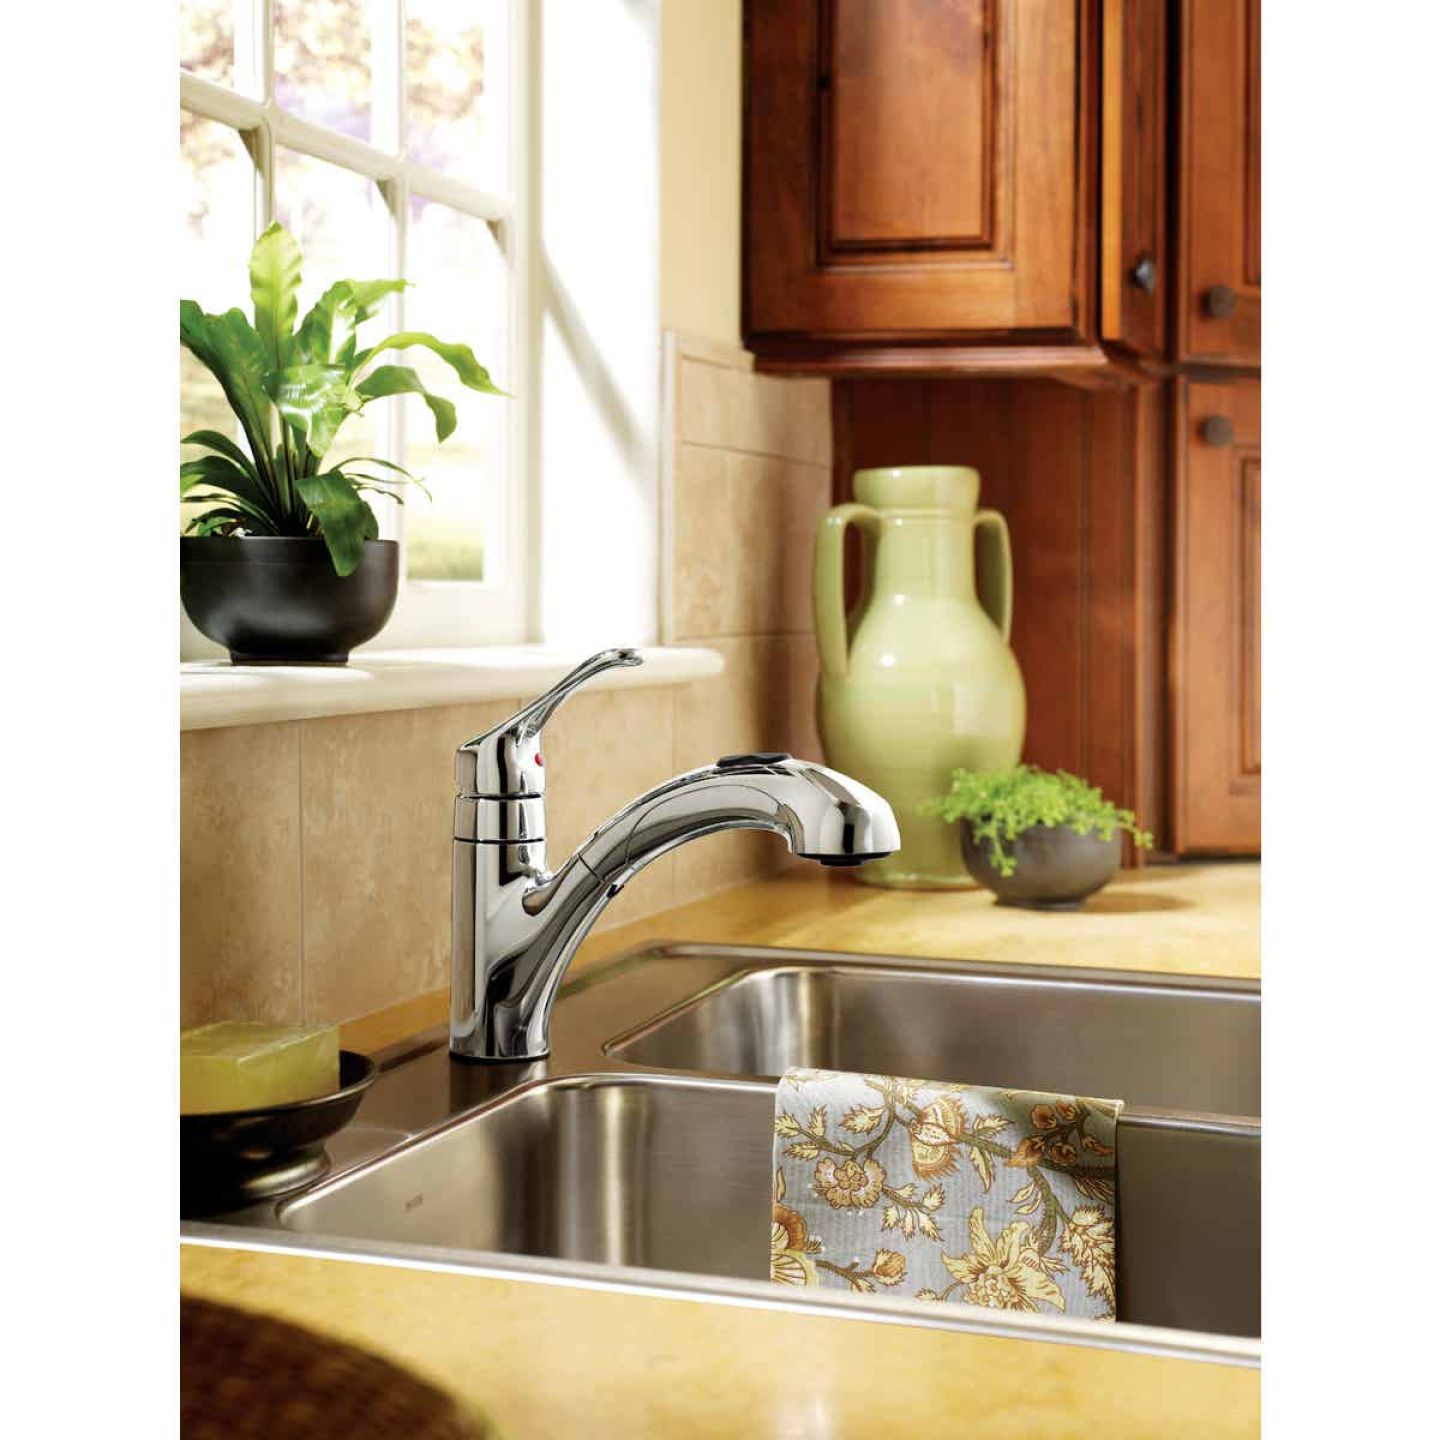 Moen Renzo Single Handle Lever Pull-Out Kitchen Faucet, Chrome Image 3